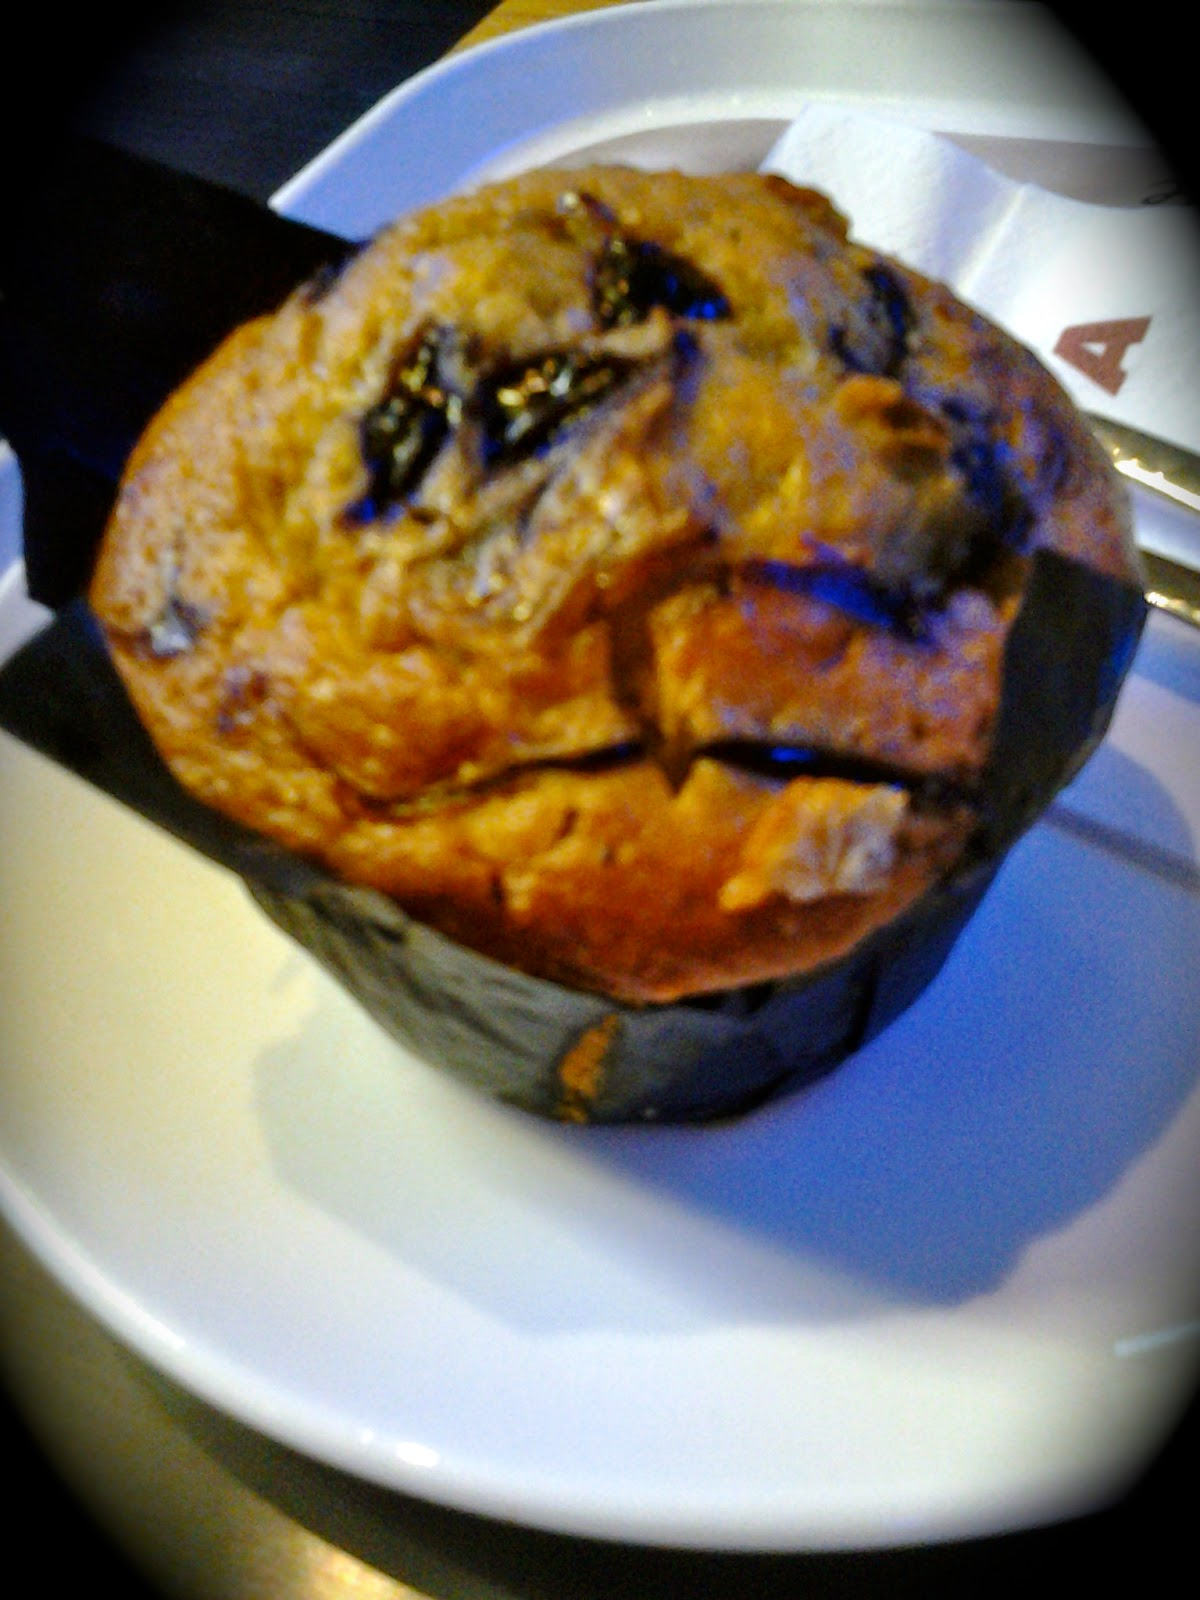 Costa Cafe Blueberry Muffin Singapore